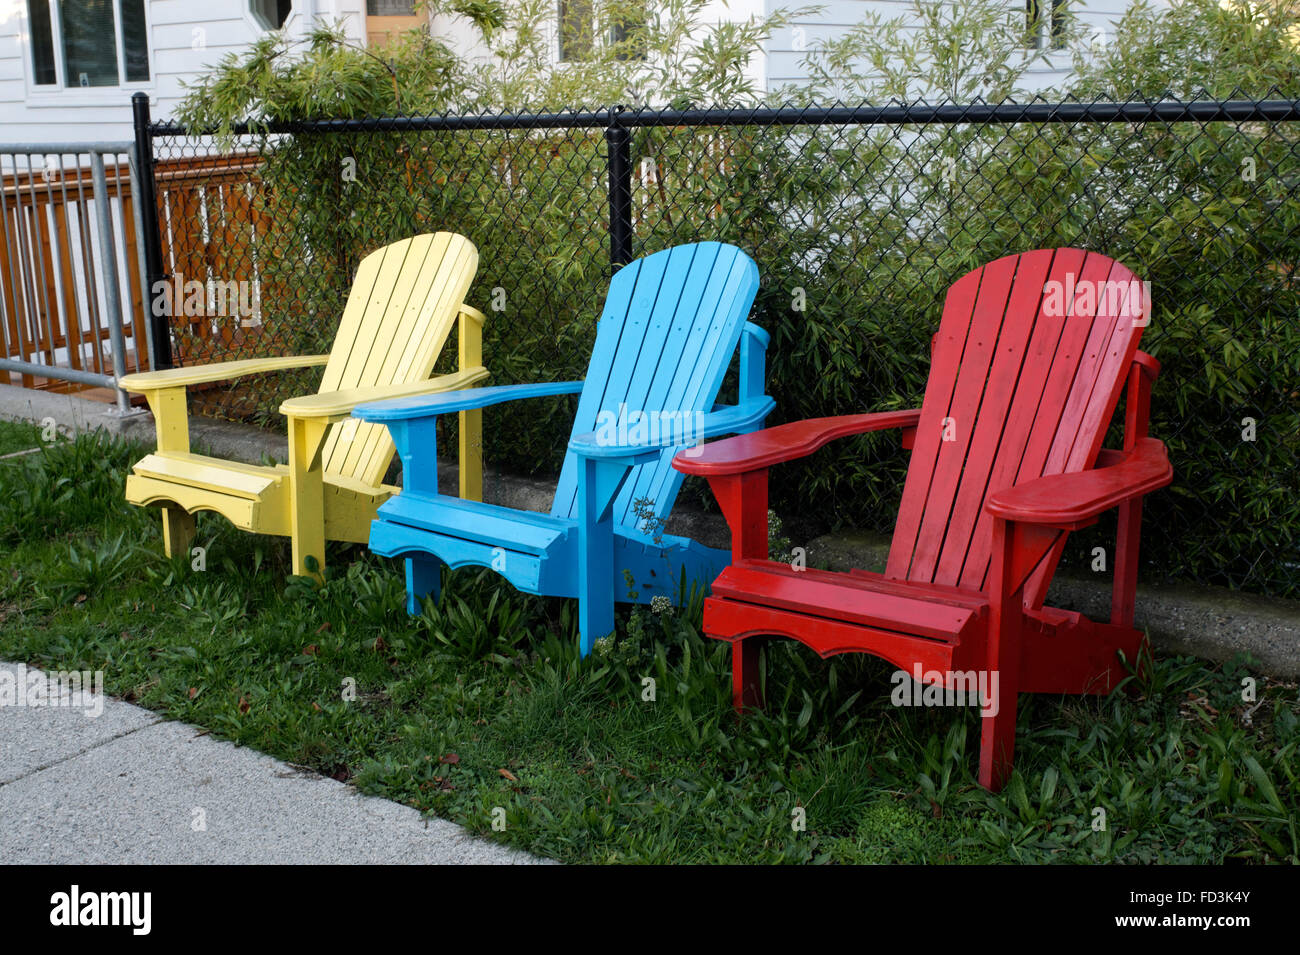 Three Wooden Adirondack Chairs Painted In The Primary Colors Red, Yellow,  And Red